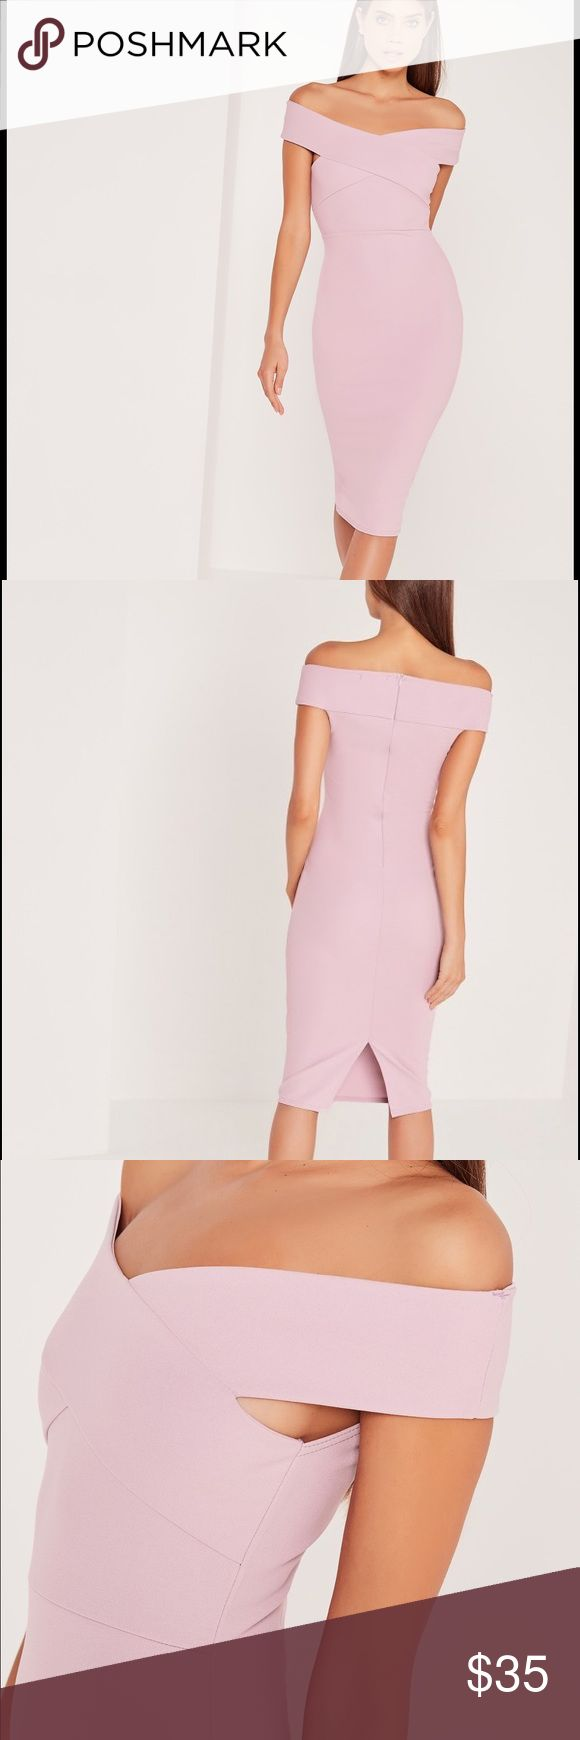 Missguided dress never been worn Soft pink color dress brand new never been worn Missguided Dresses Midi